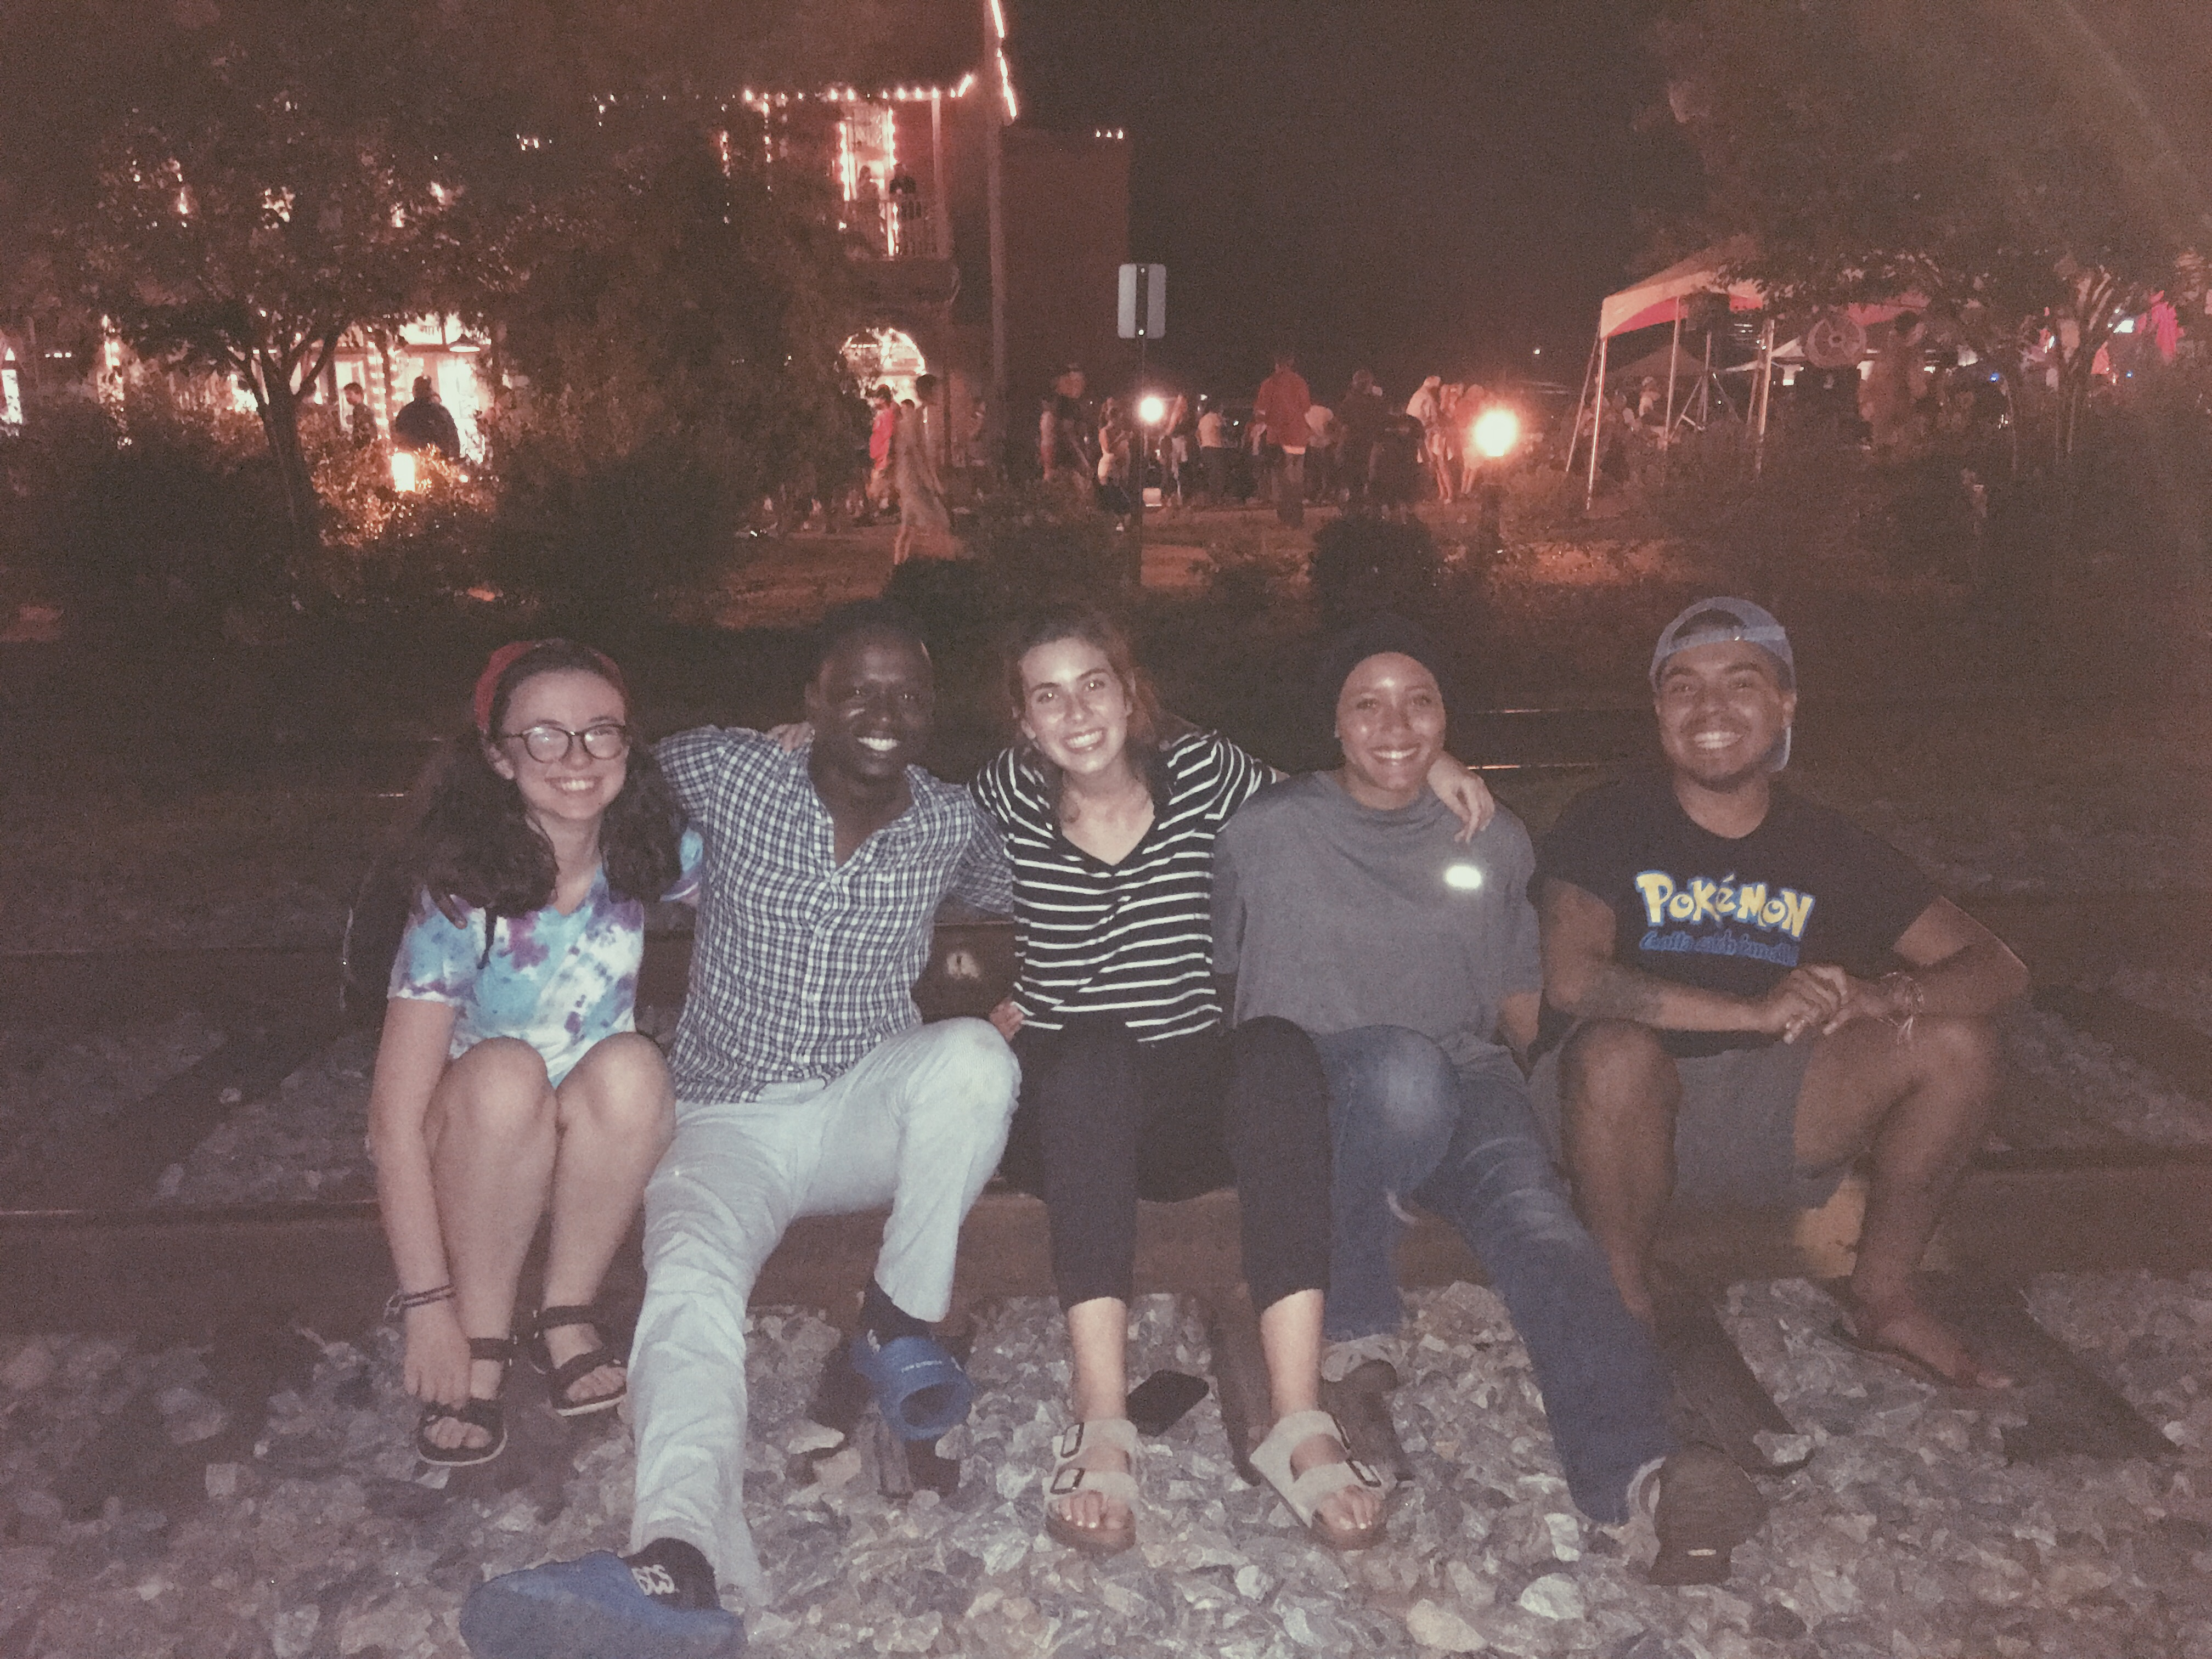 Fireworks, freedom, prisons, and peacebuilding